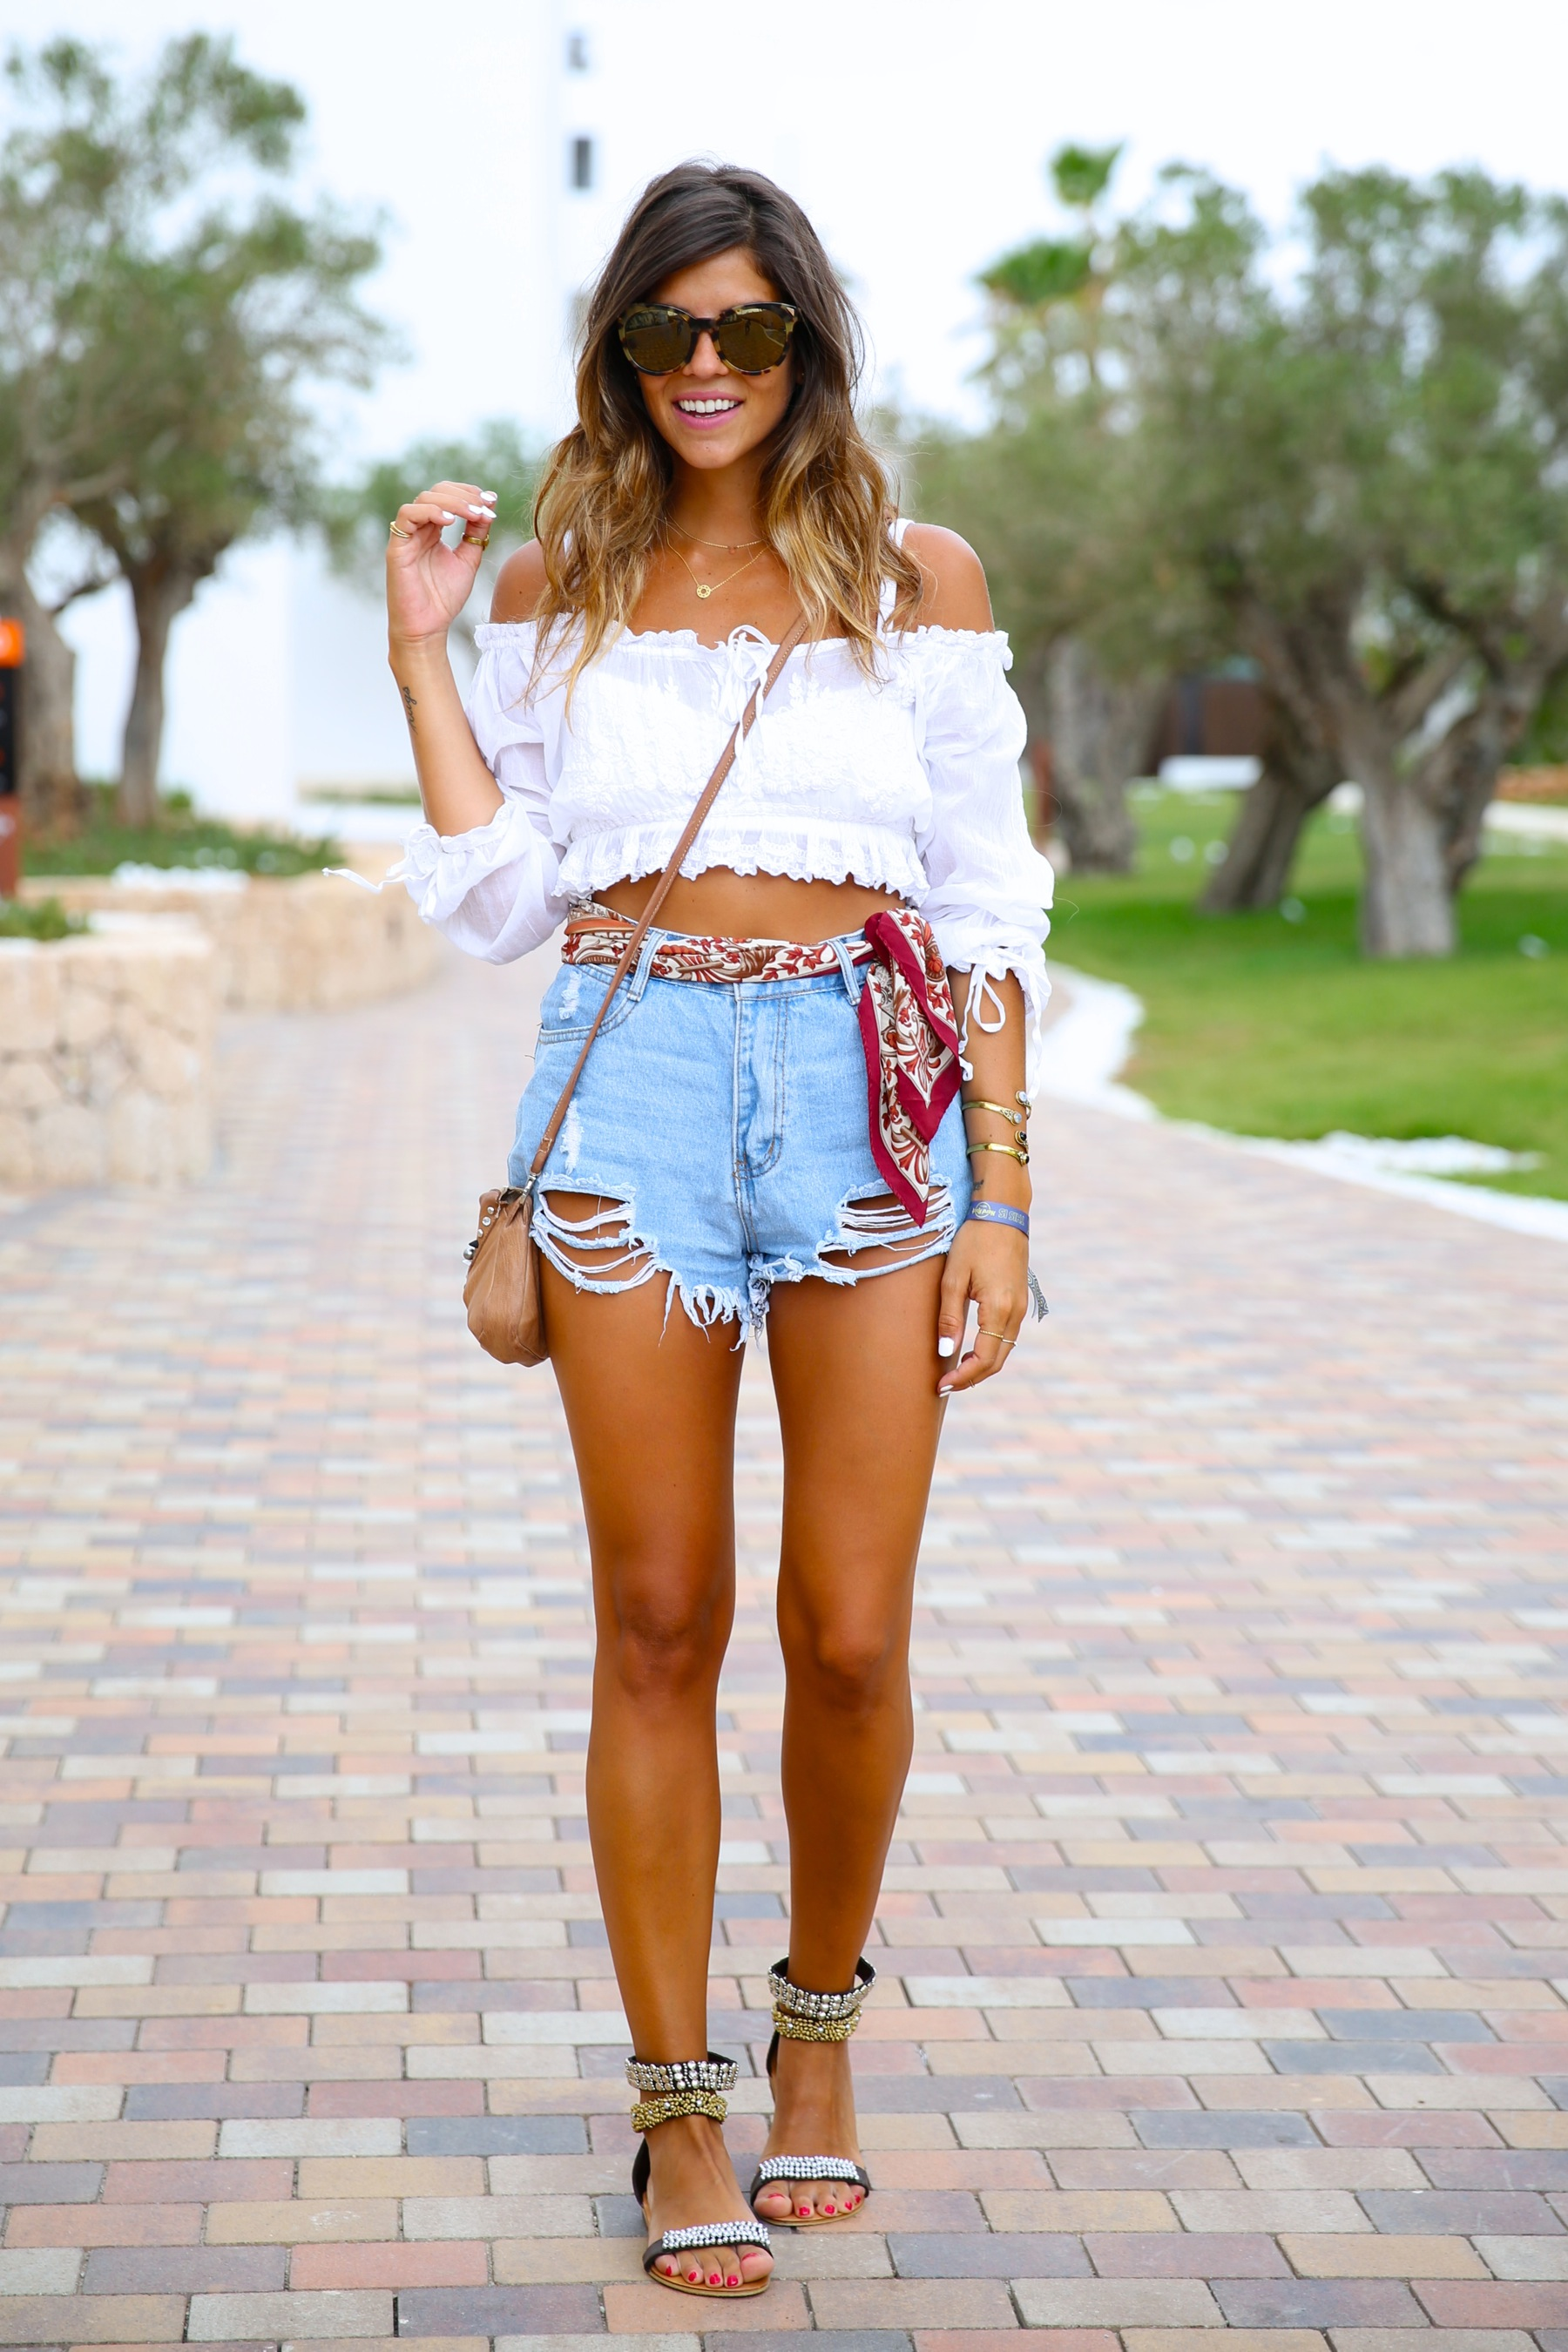 trendy_taste-look-outfit-street_style-ootd-blog-blogger-fashion_spain-moda_españa-hard_rock_hotel-ibiza-palladium-shorts_vaqueros-denim_shorts-boho-verano-summer-hippie-pañuelo-19